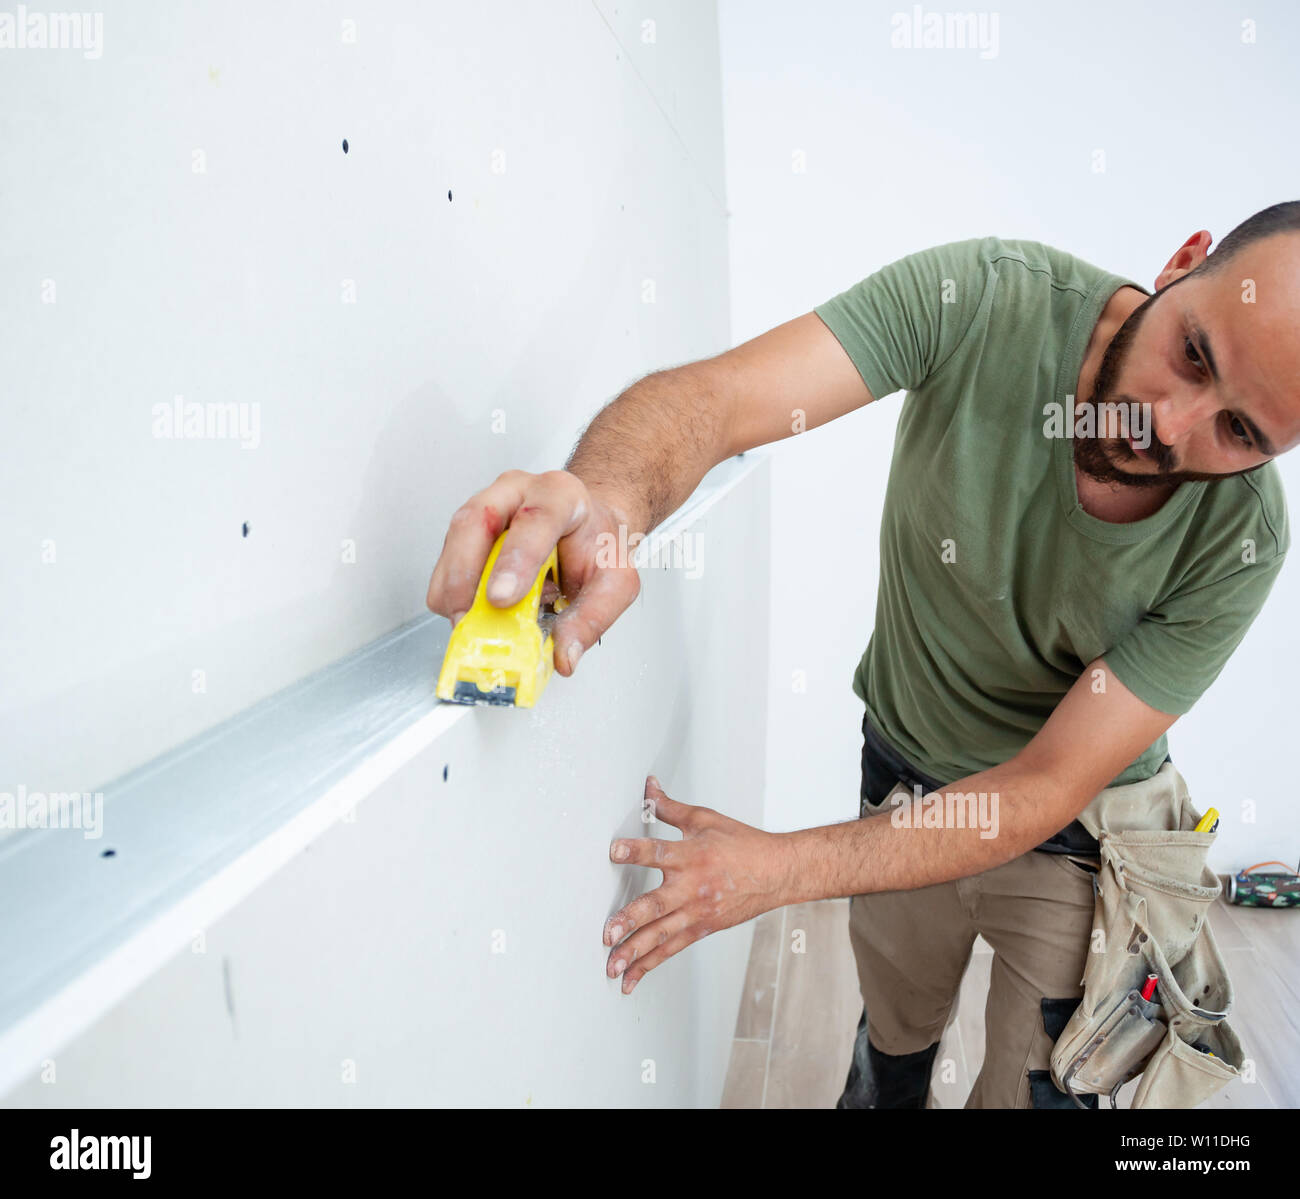 Worker building plasterboard wall  Working with cutting tools